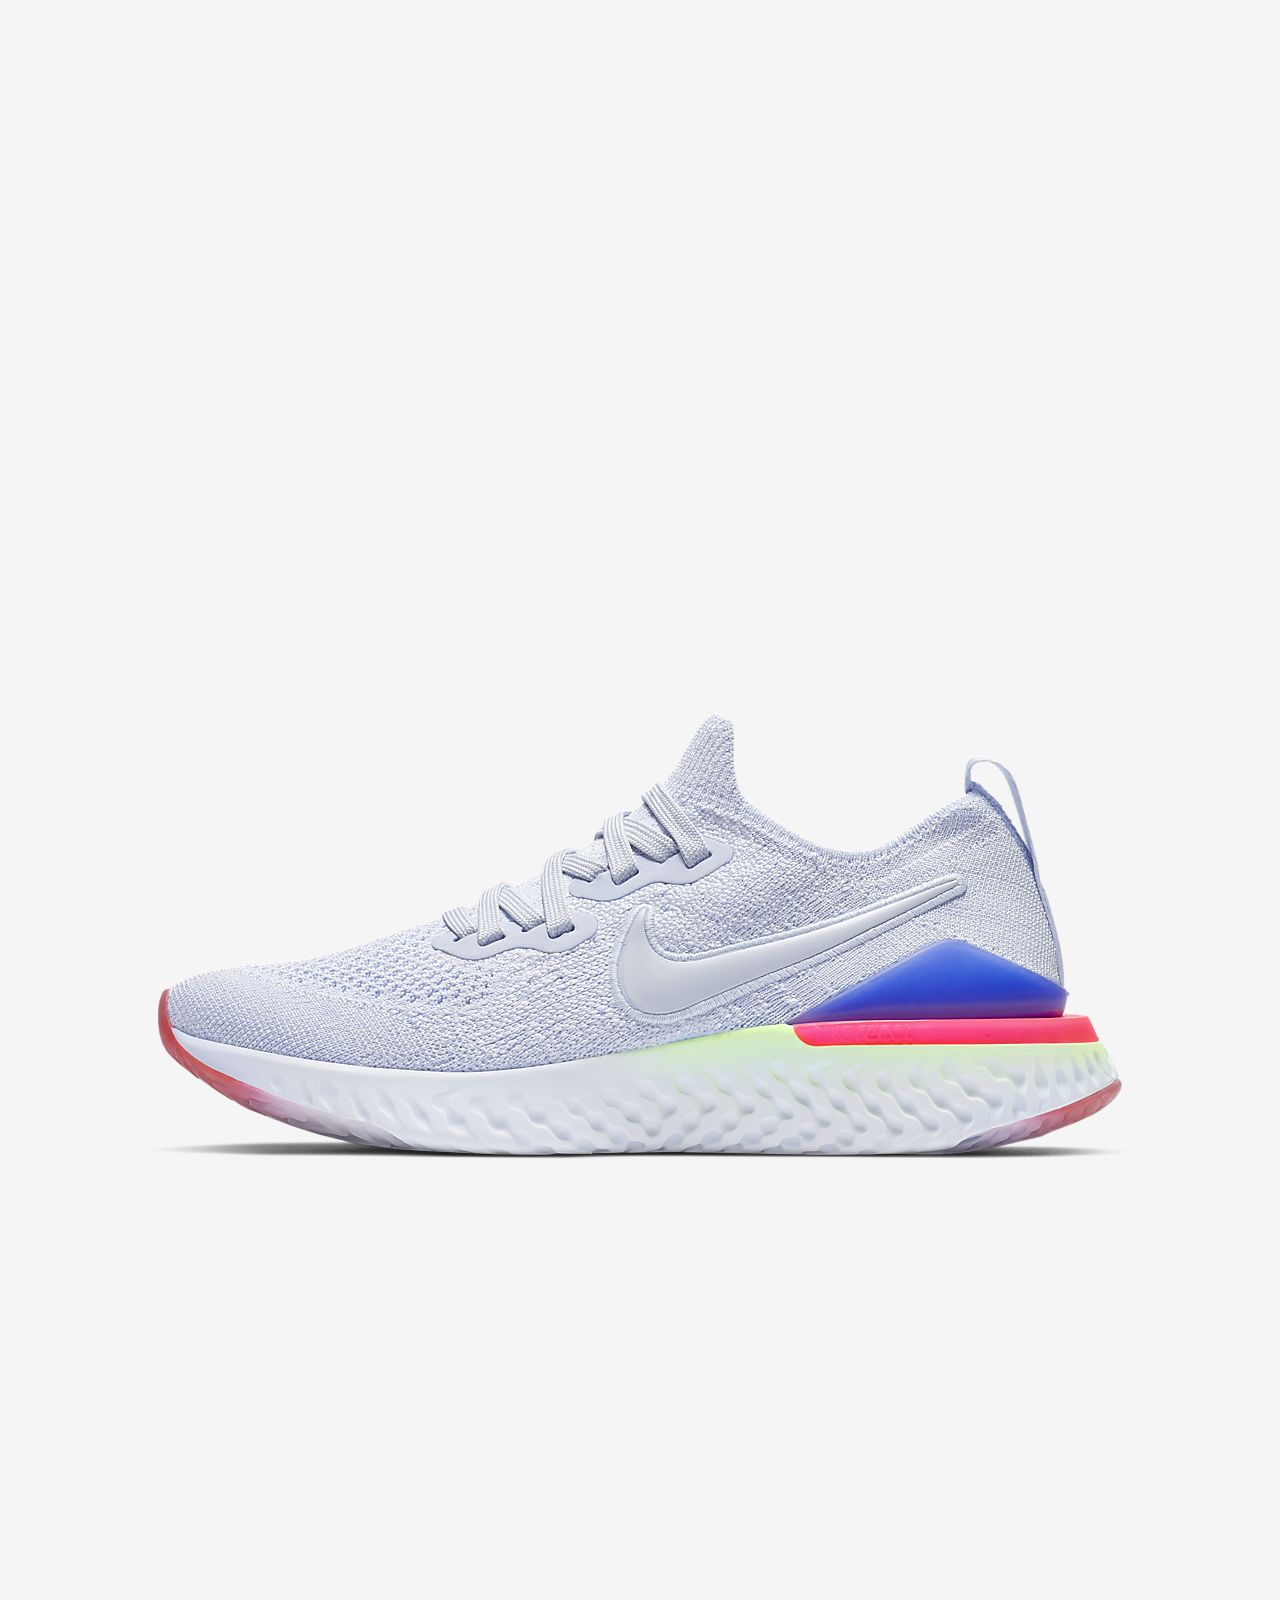 490fedeb8f978 Nike Epic React Flyknit 2 Older Kids  Running Shoe. Nike.com GB